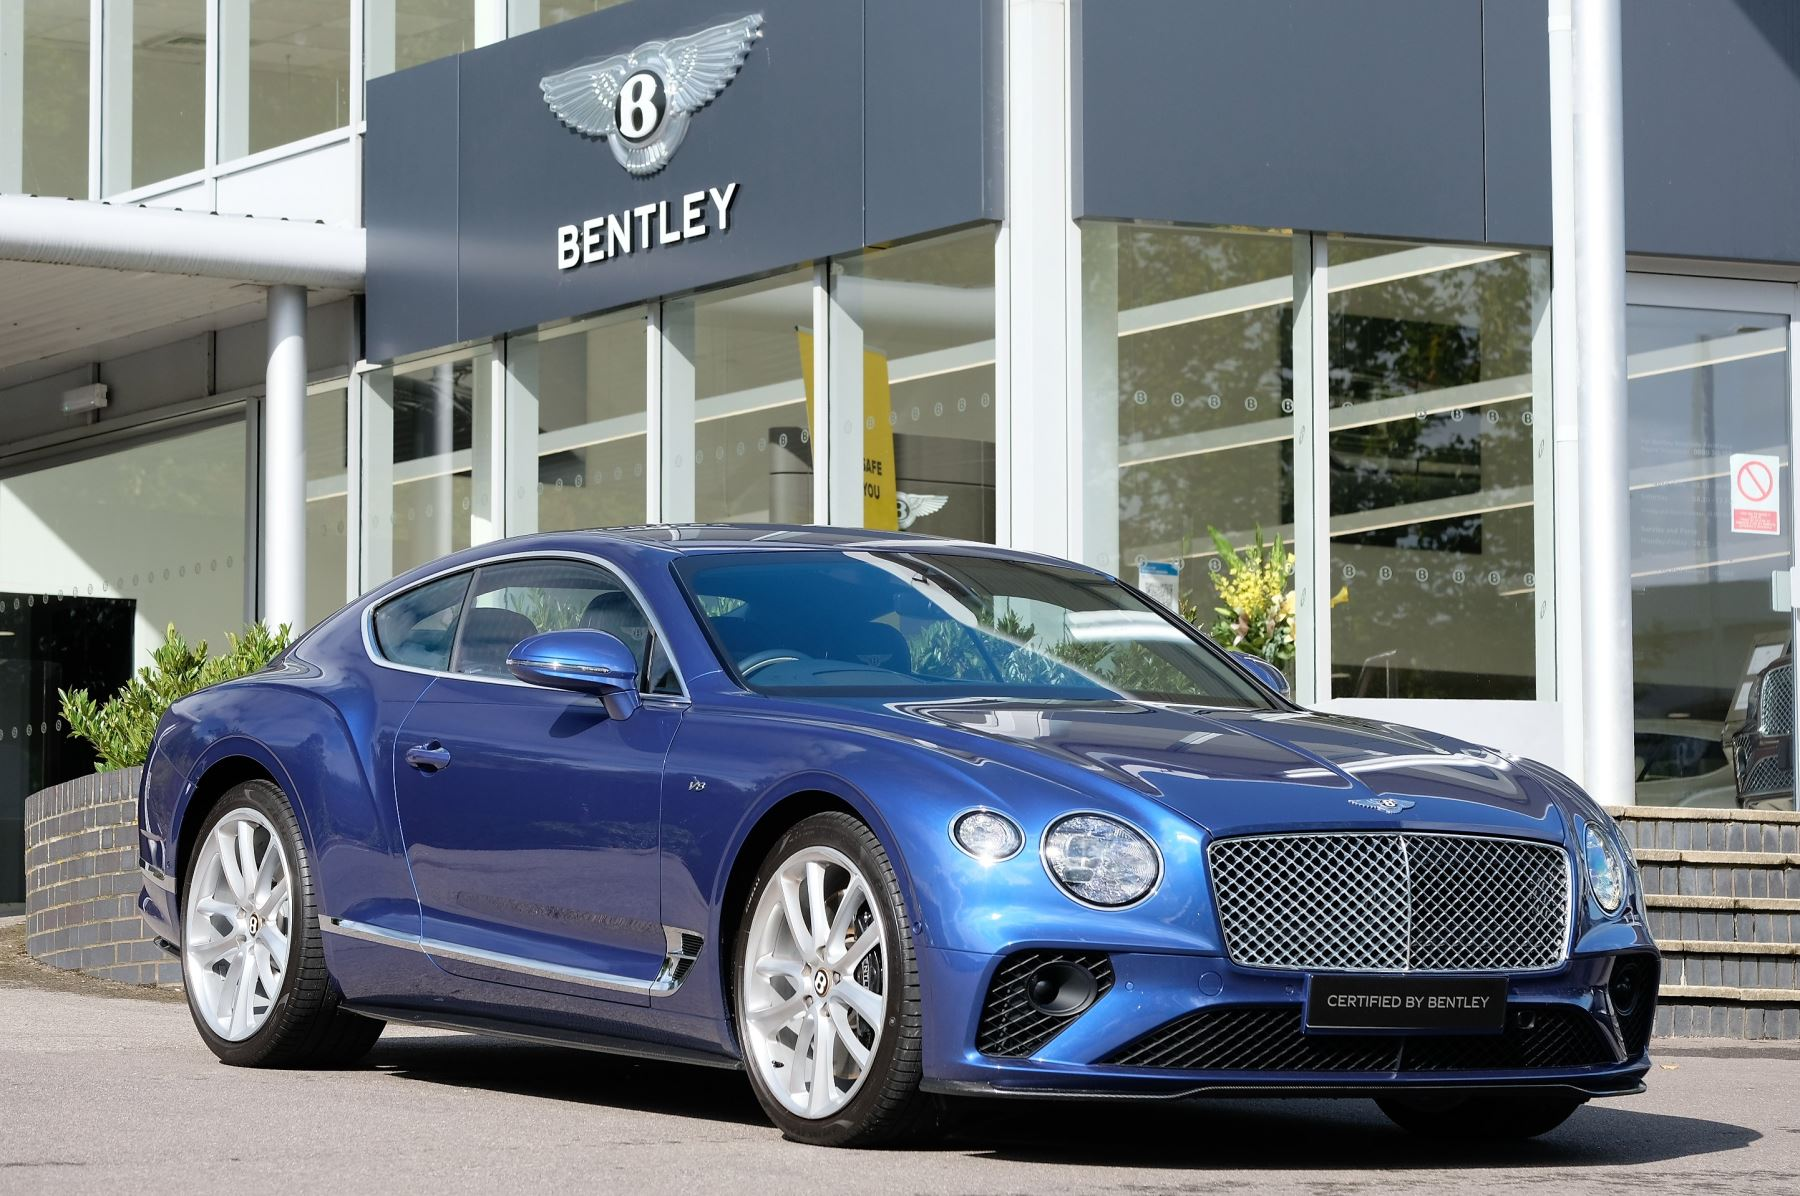 Bentley Continental GT 4.0 V8 2dr Mulliner Driving Specification Automatic Coupe (2020)